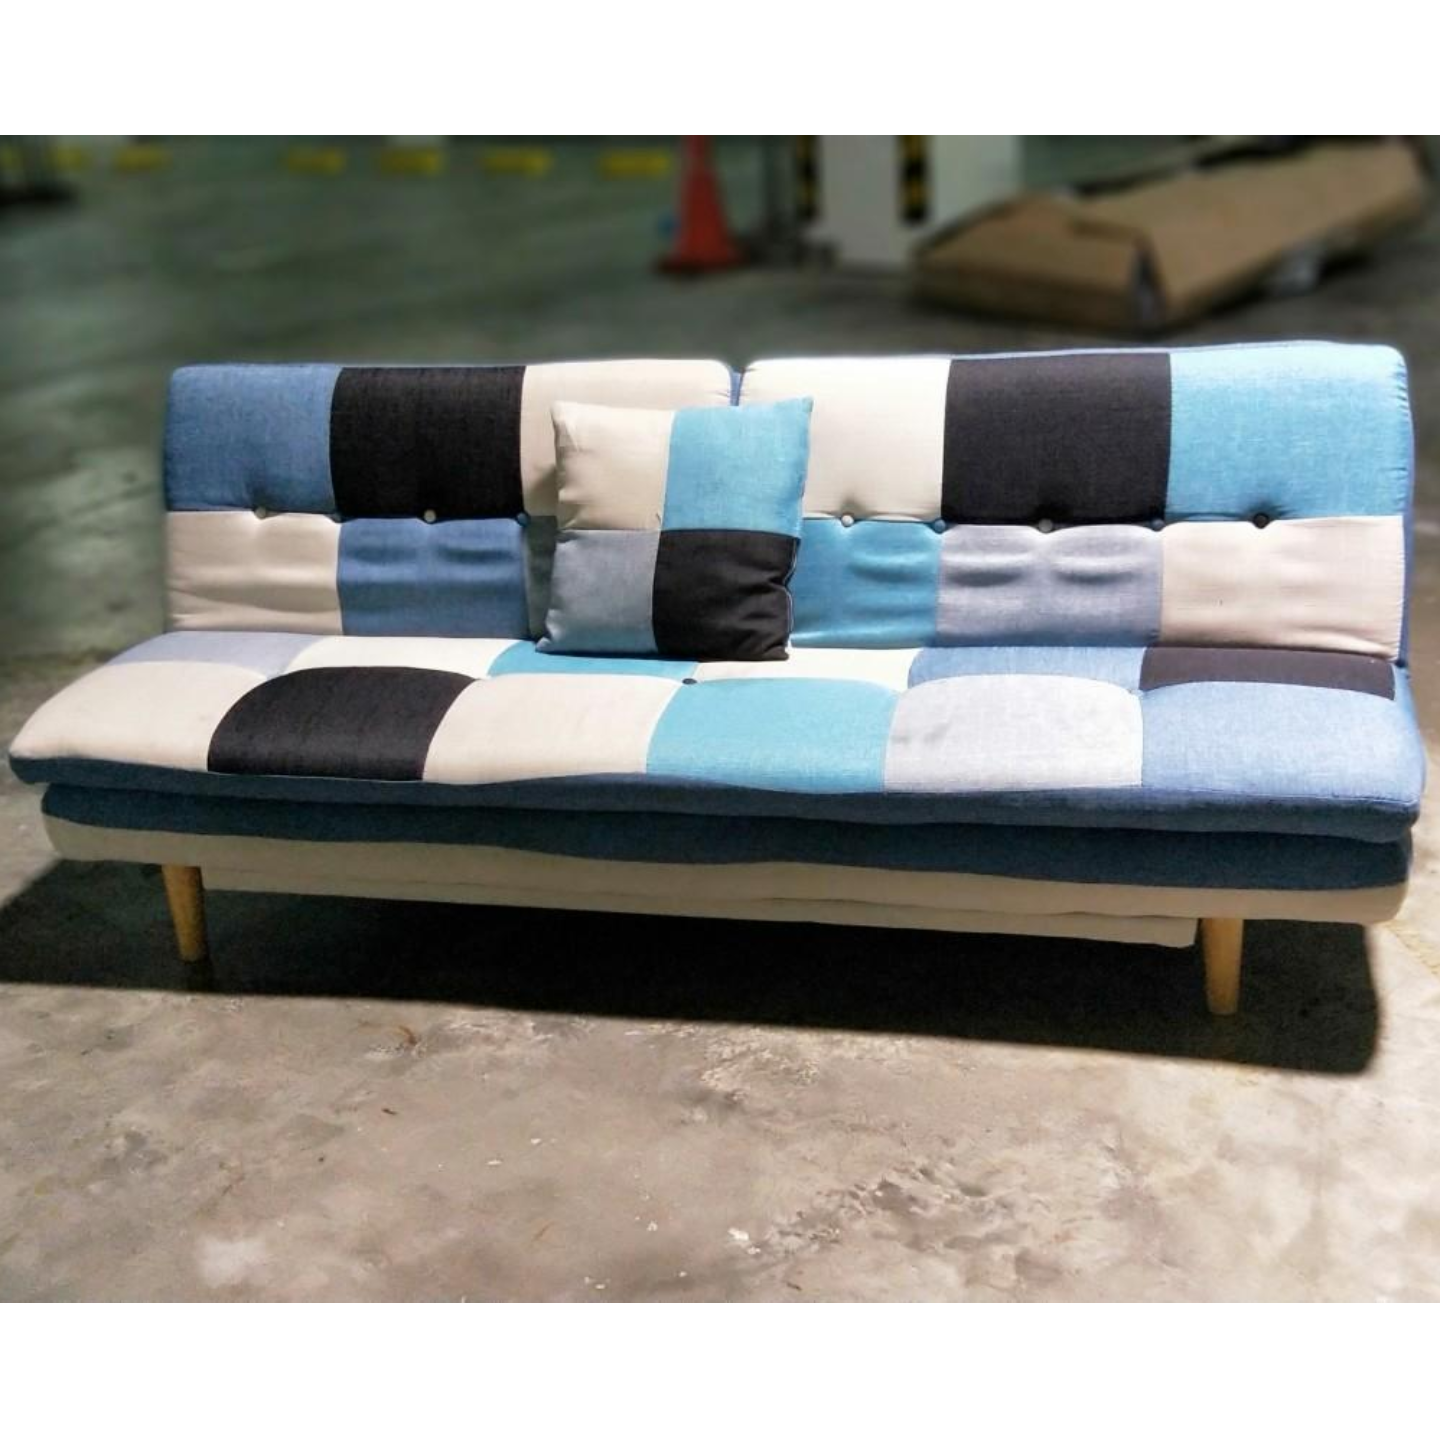 ANNABELLE Patchwork Sofa Bed in BLUE MIX